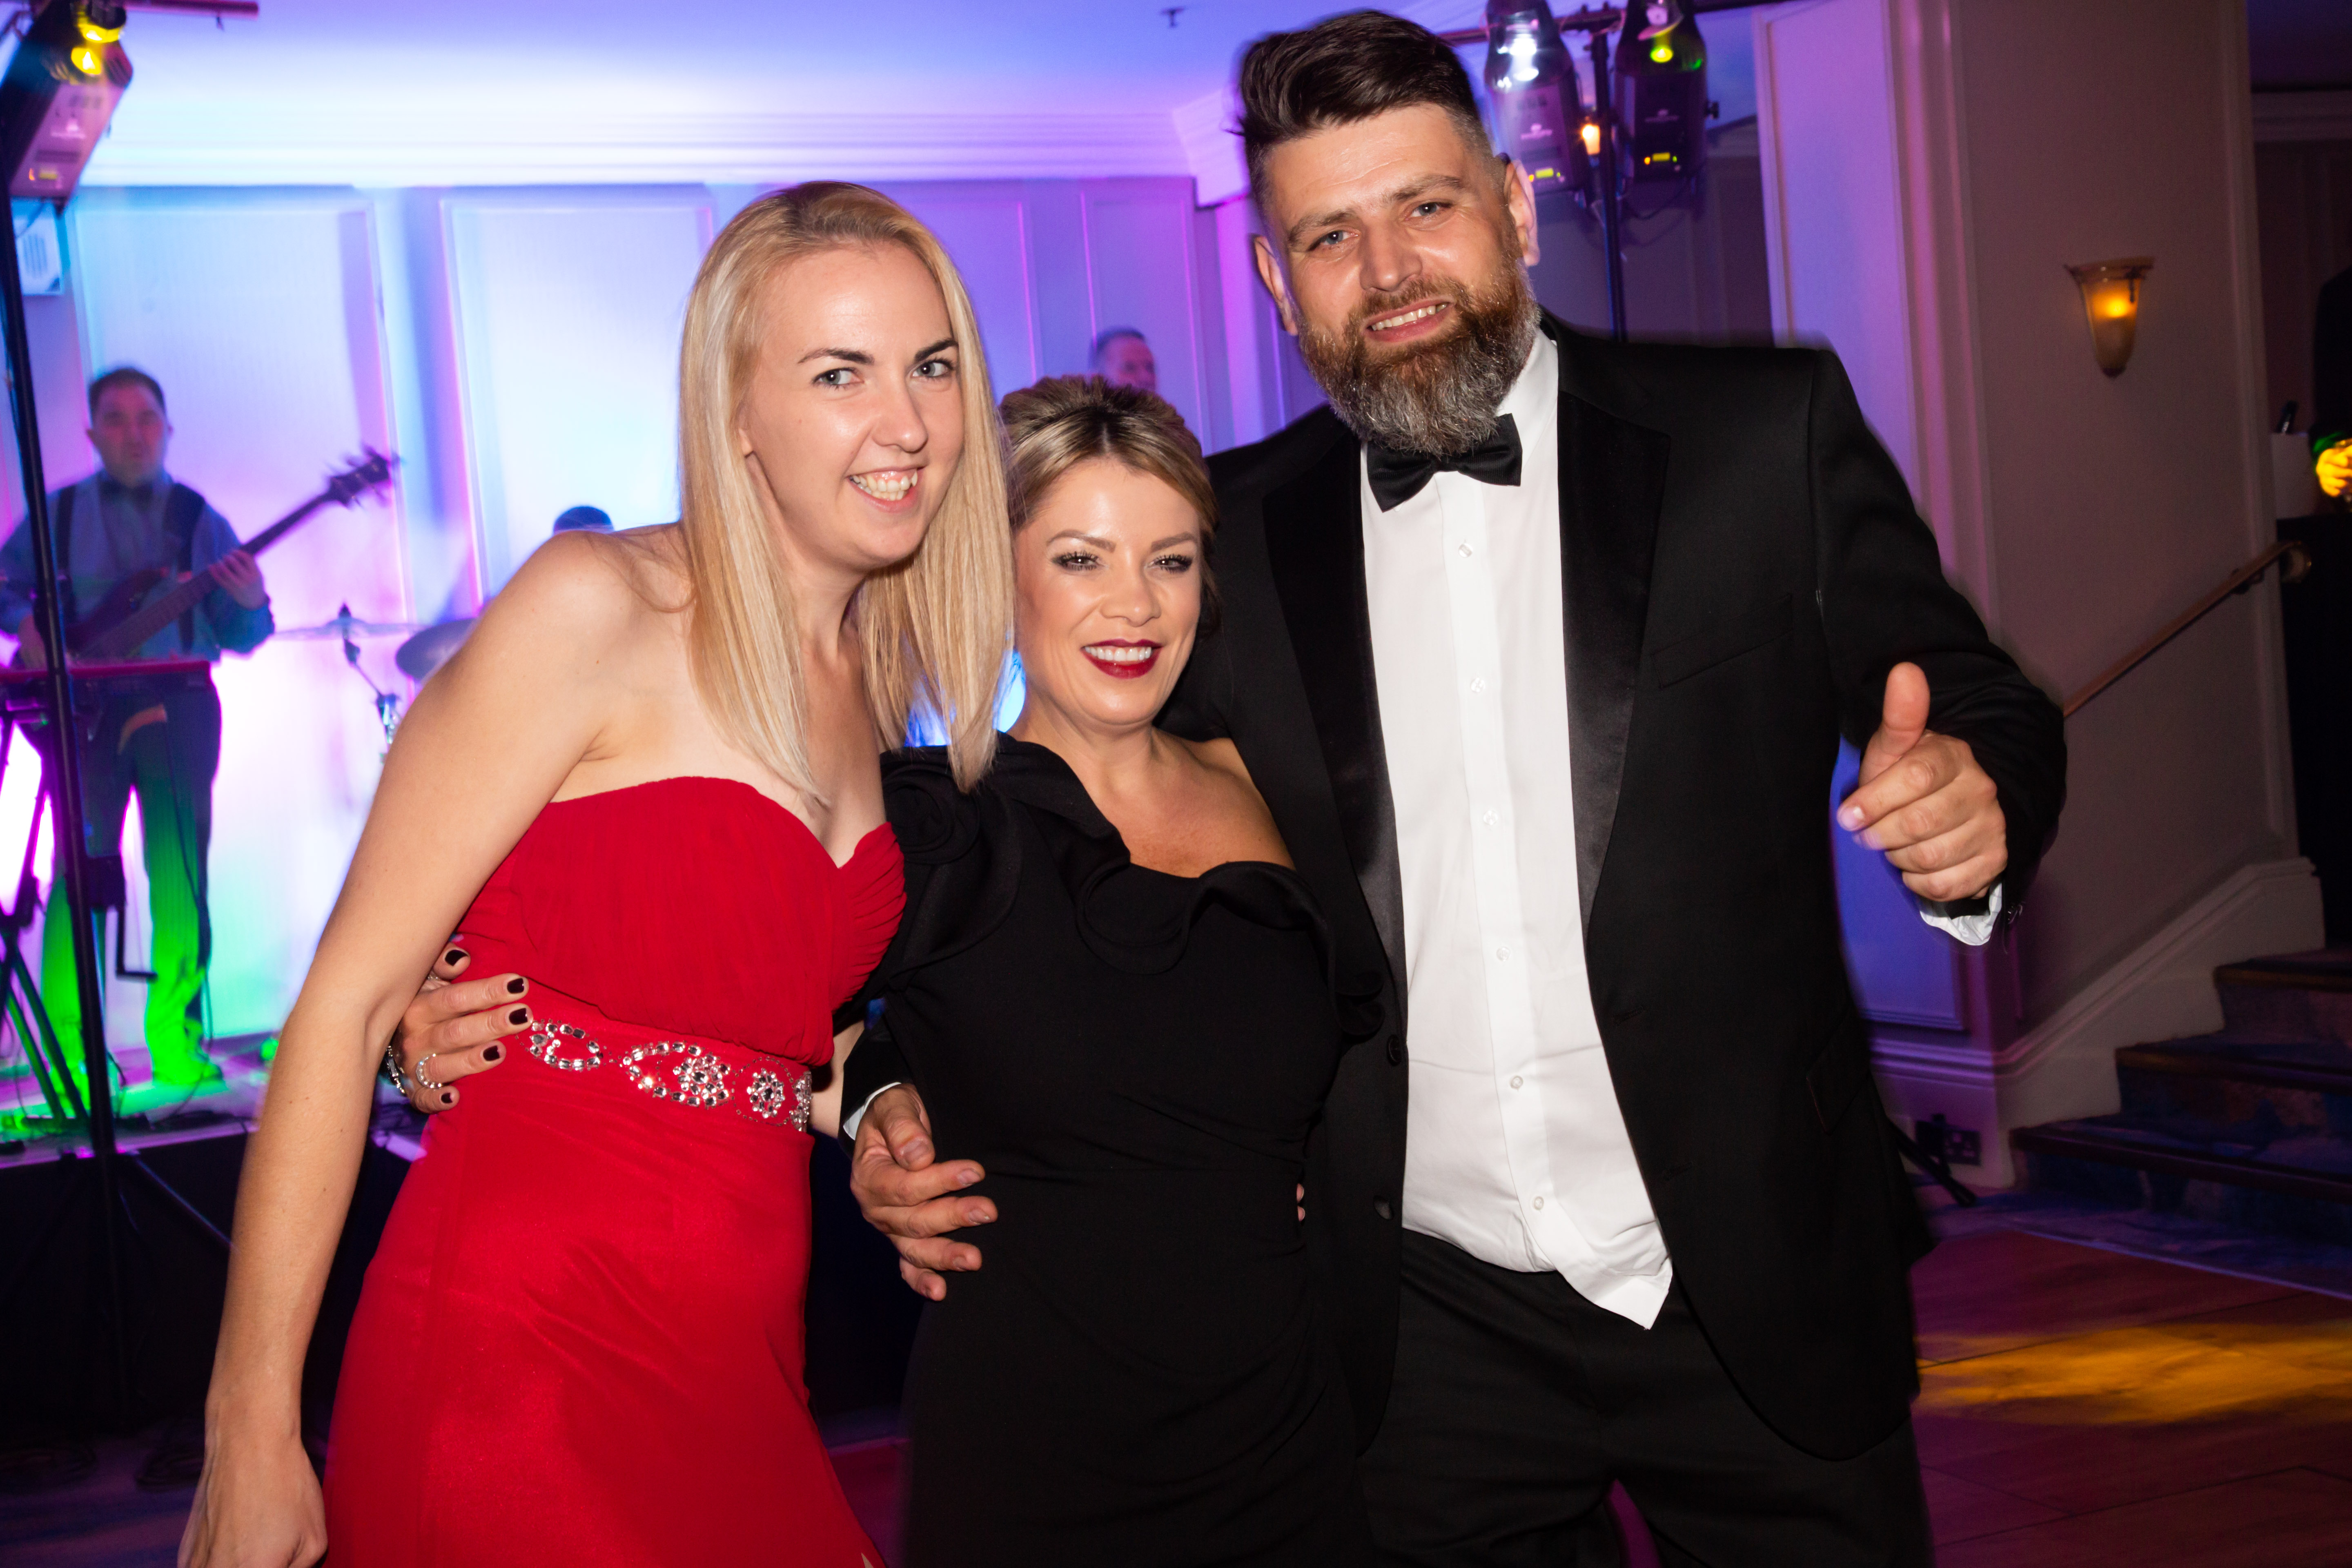 Above: Windles' sales director Andrea Norcott (centre) with colleagues Greg Parzniewski (bagging and Kard Klasping manager) and Lyndsey King (finishing manager) at the awards event.